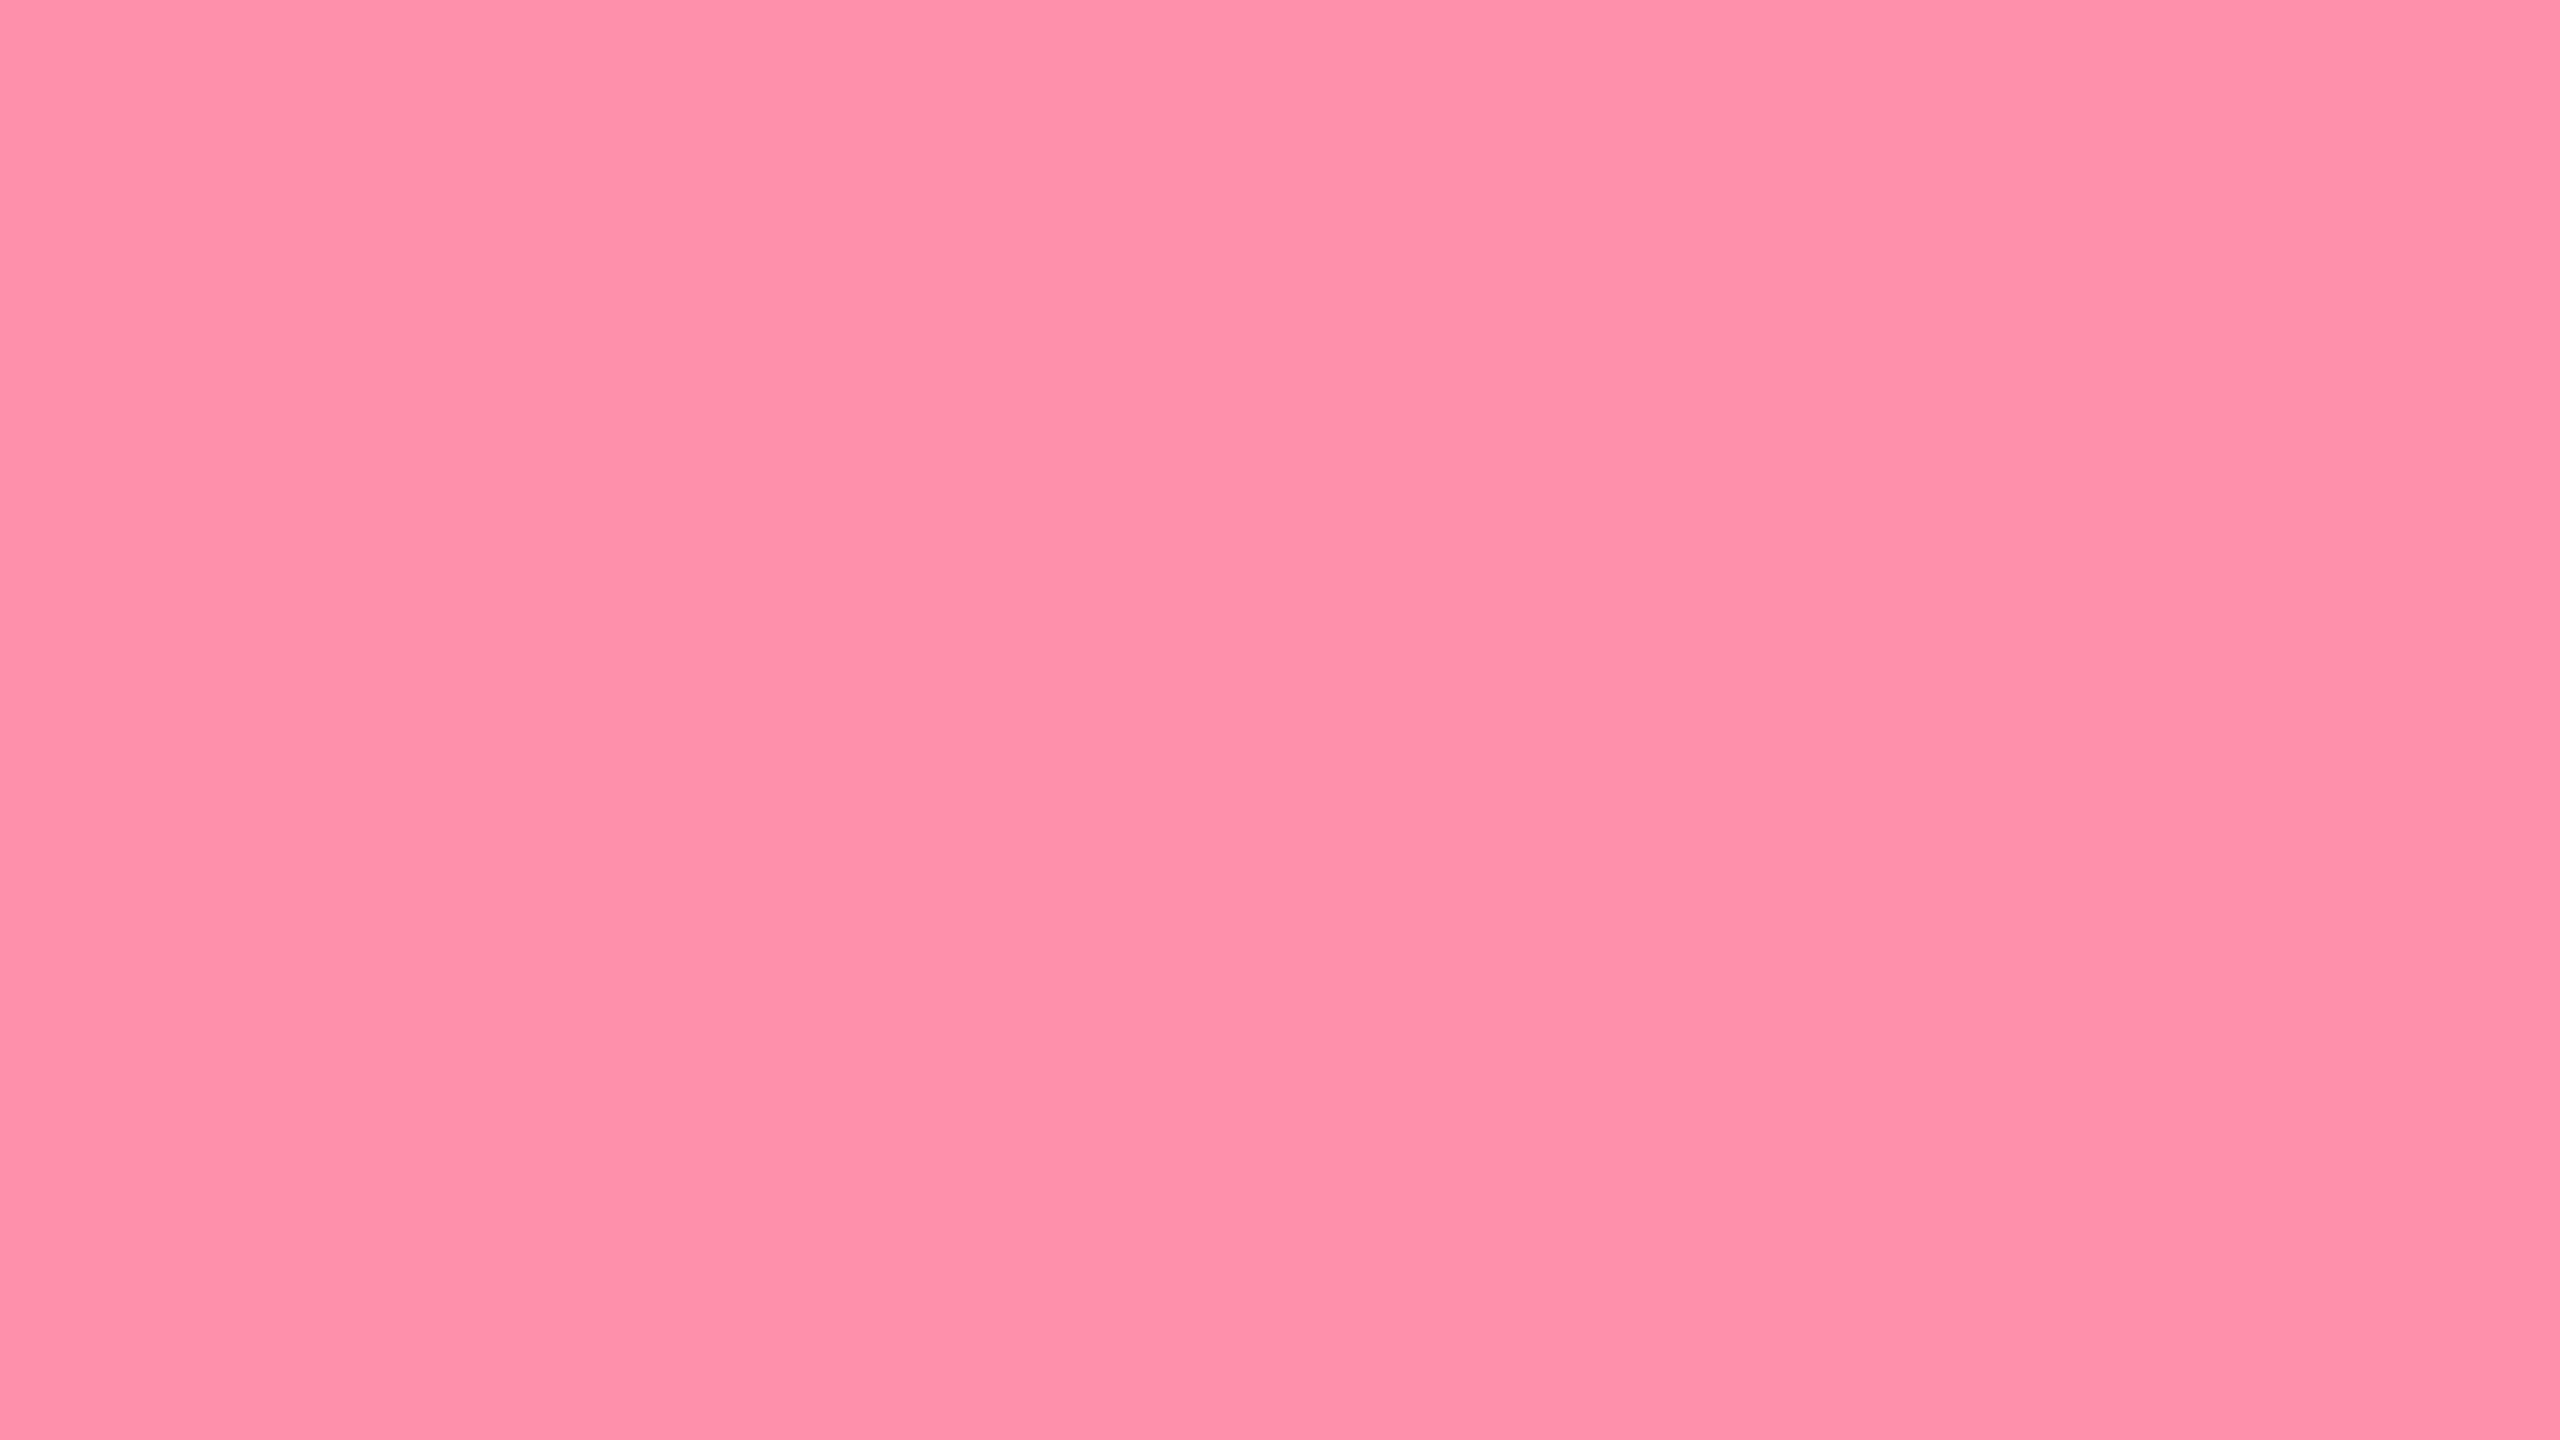 2560x1440 Baker-Miller Pink Solid Color Background